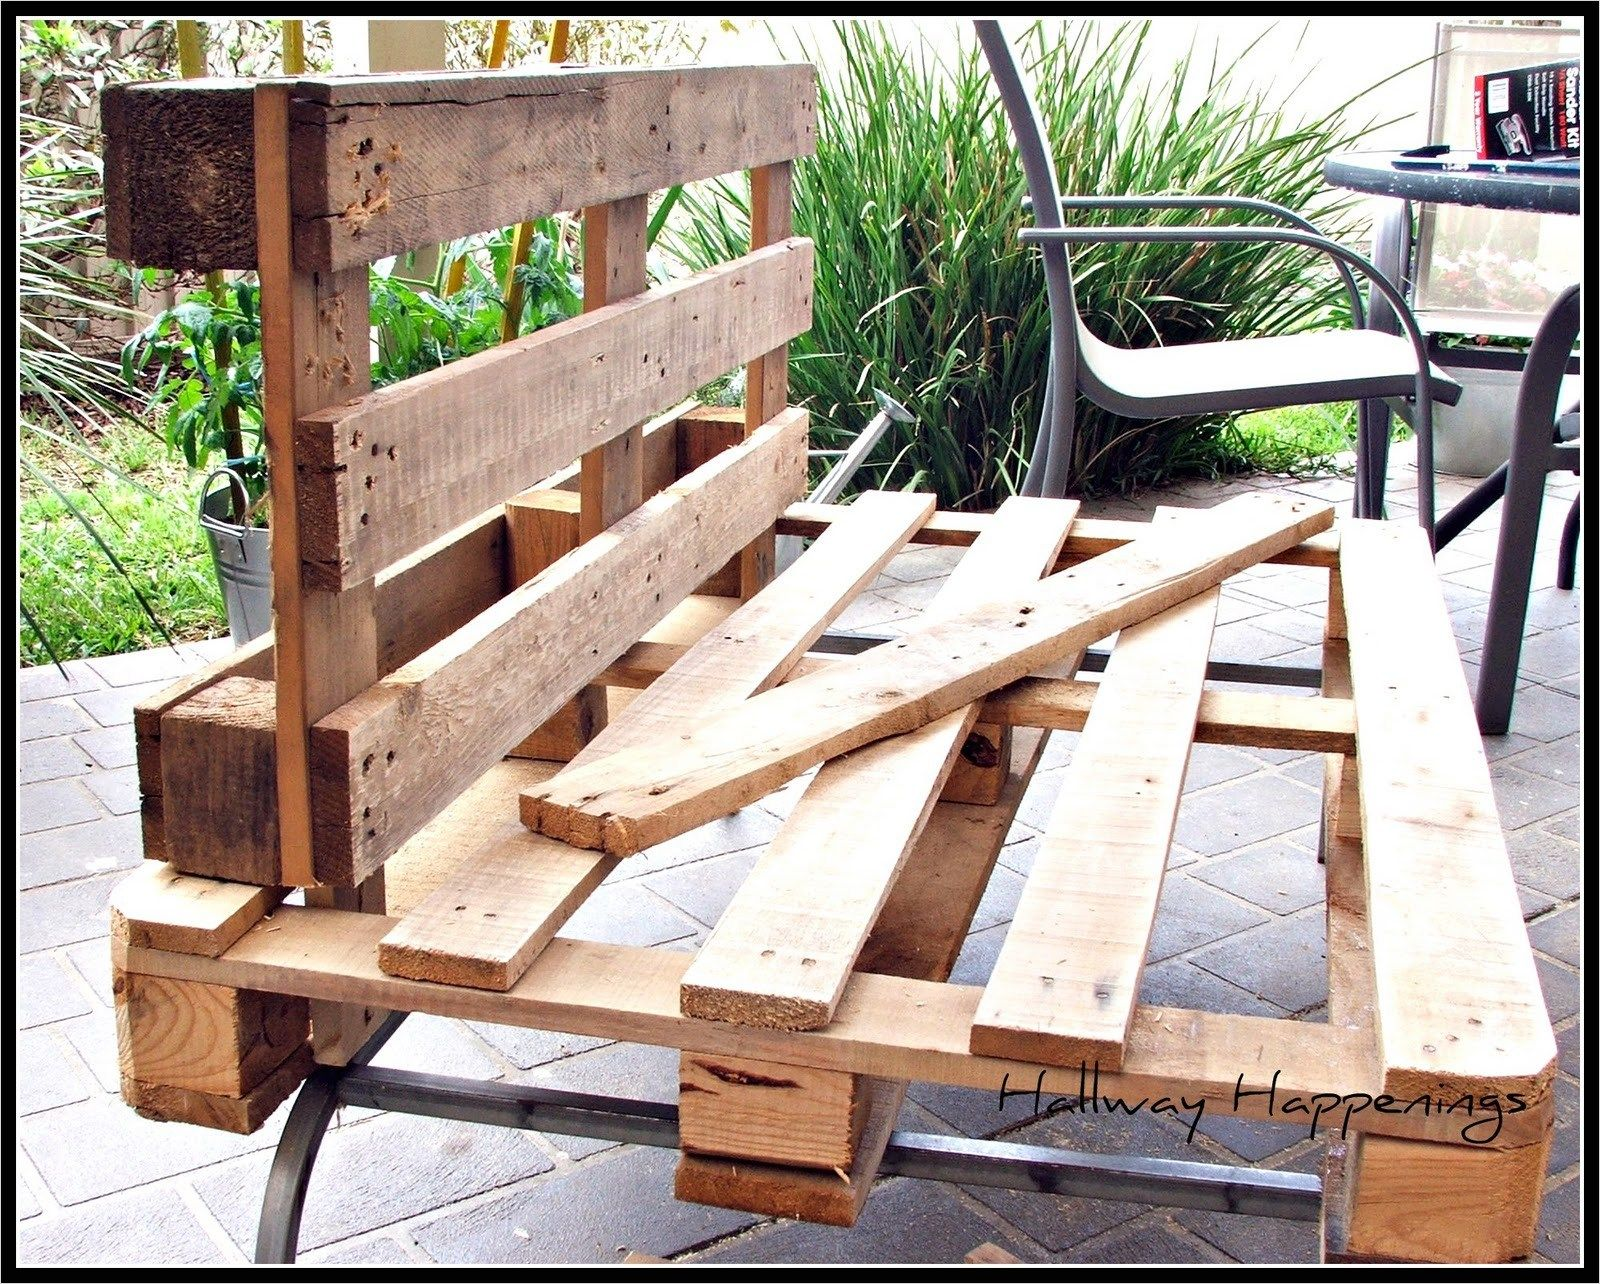 garden furniture made from pallets square 40 diy ideas outdoor furniture made from pallets 32 how to make pallet patio elegant ahfhome diy home